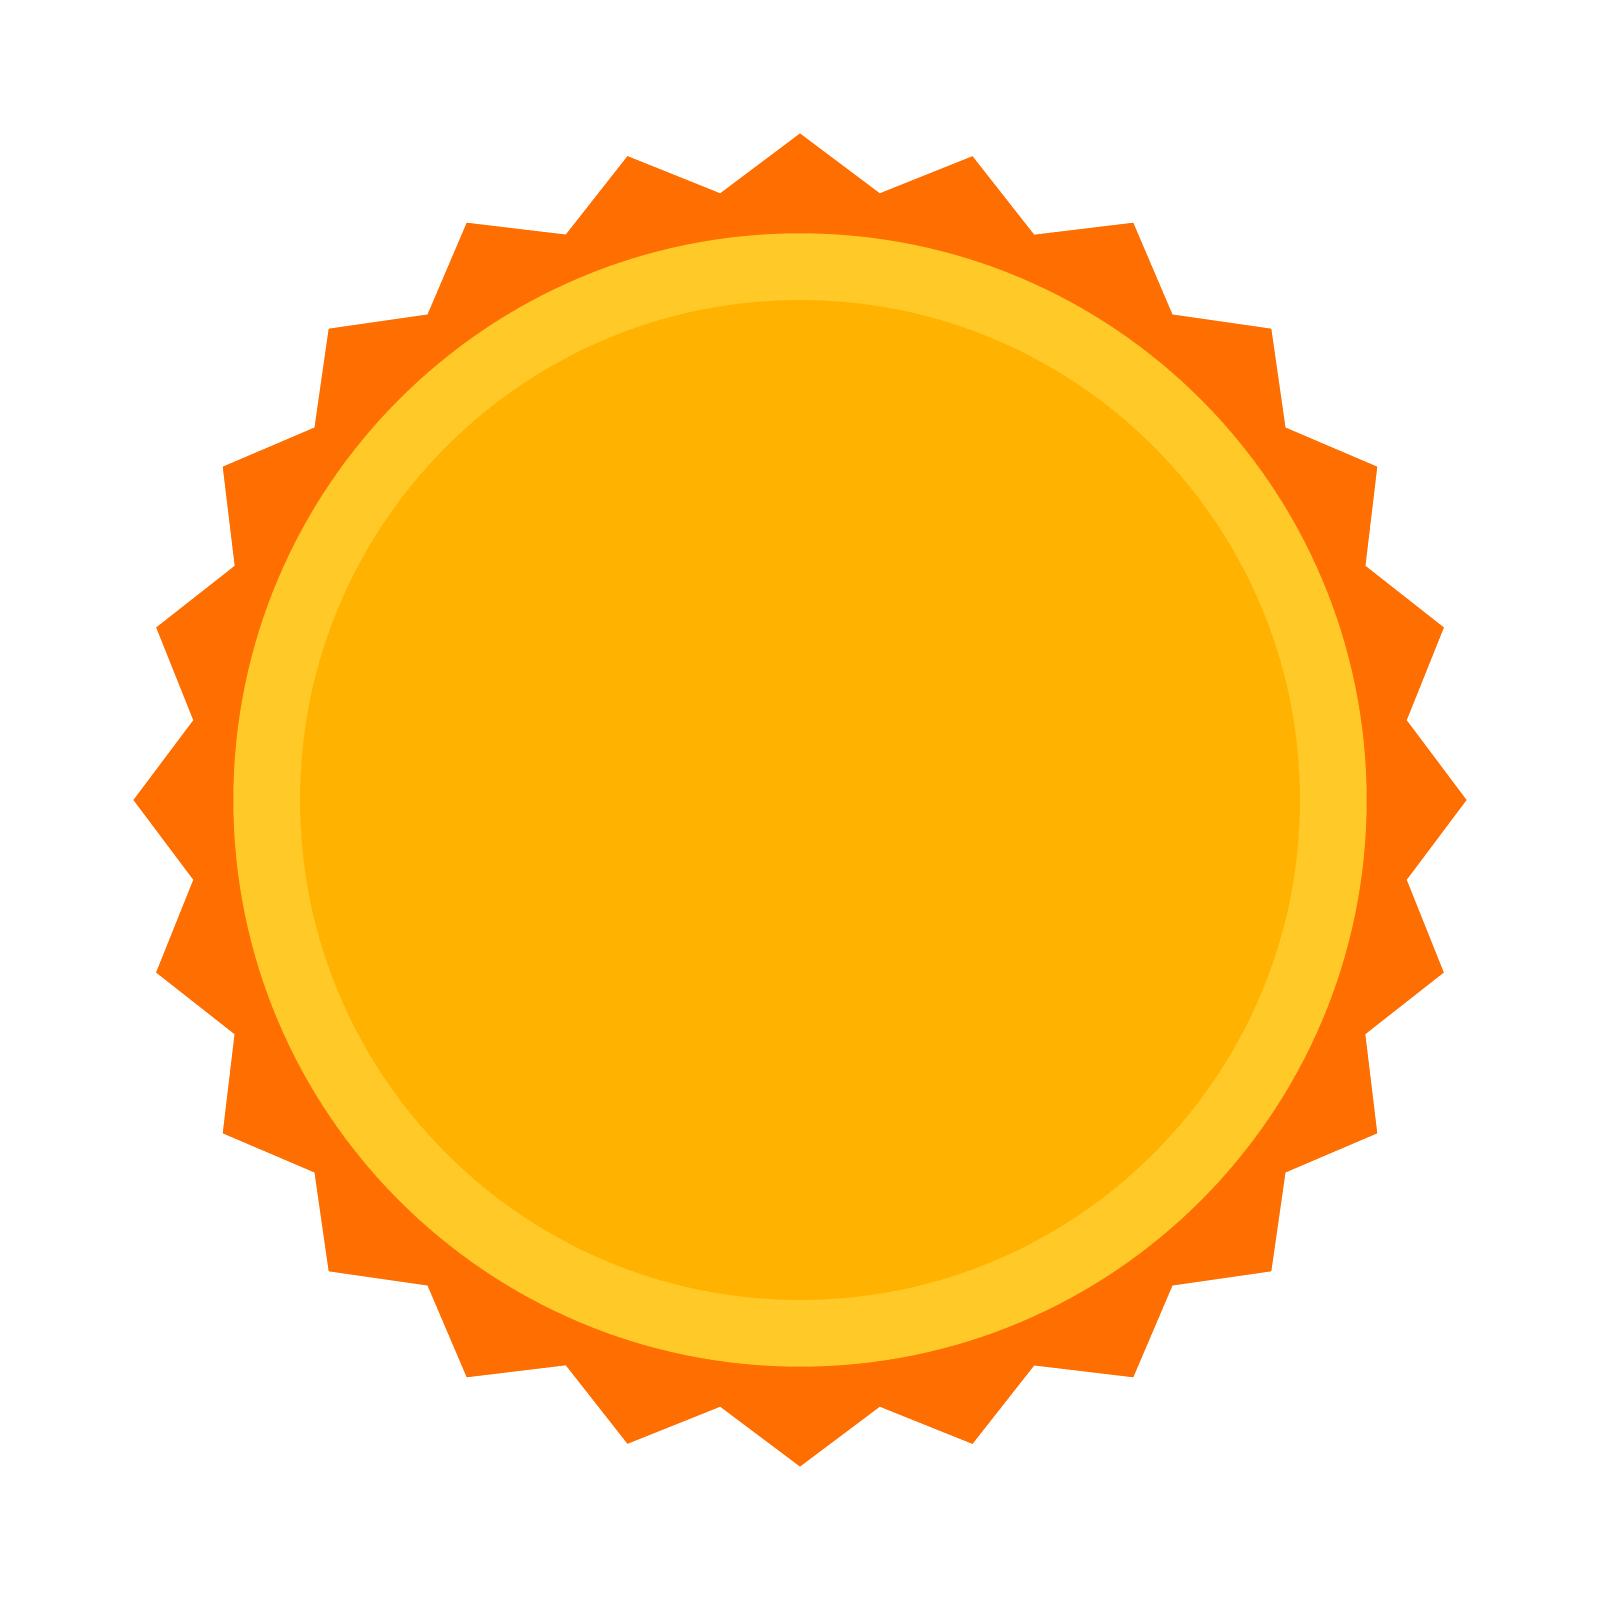 Circle of stars png. Sun star icon free